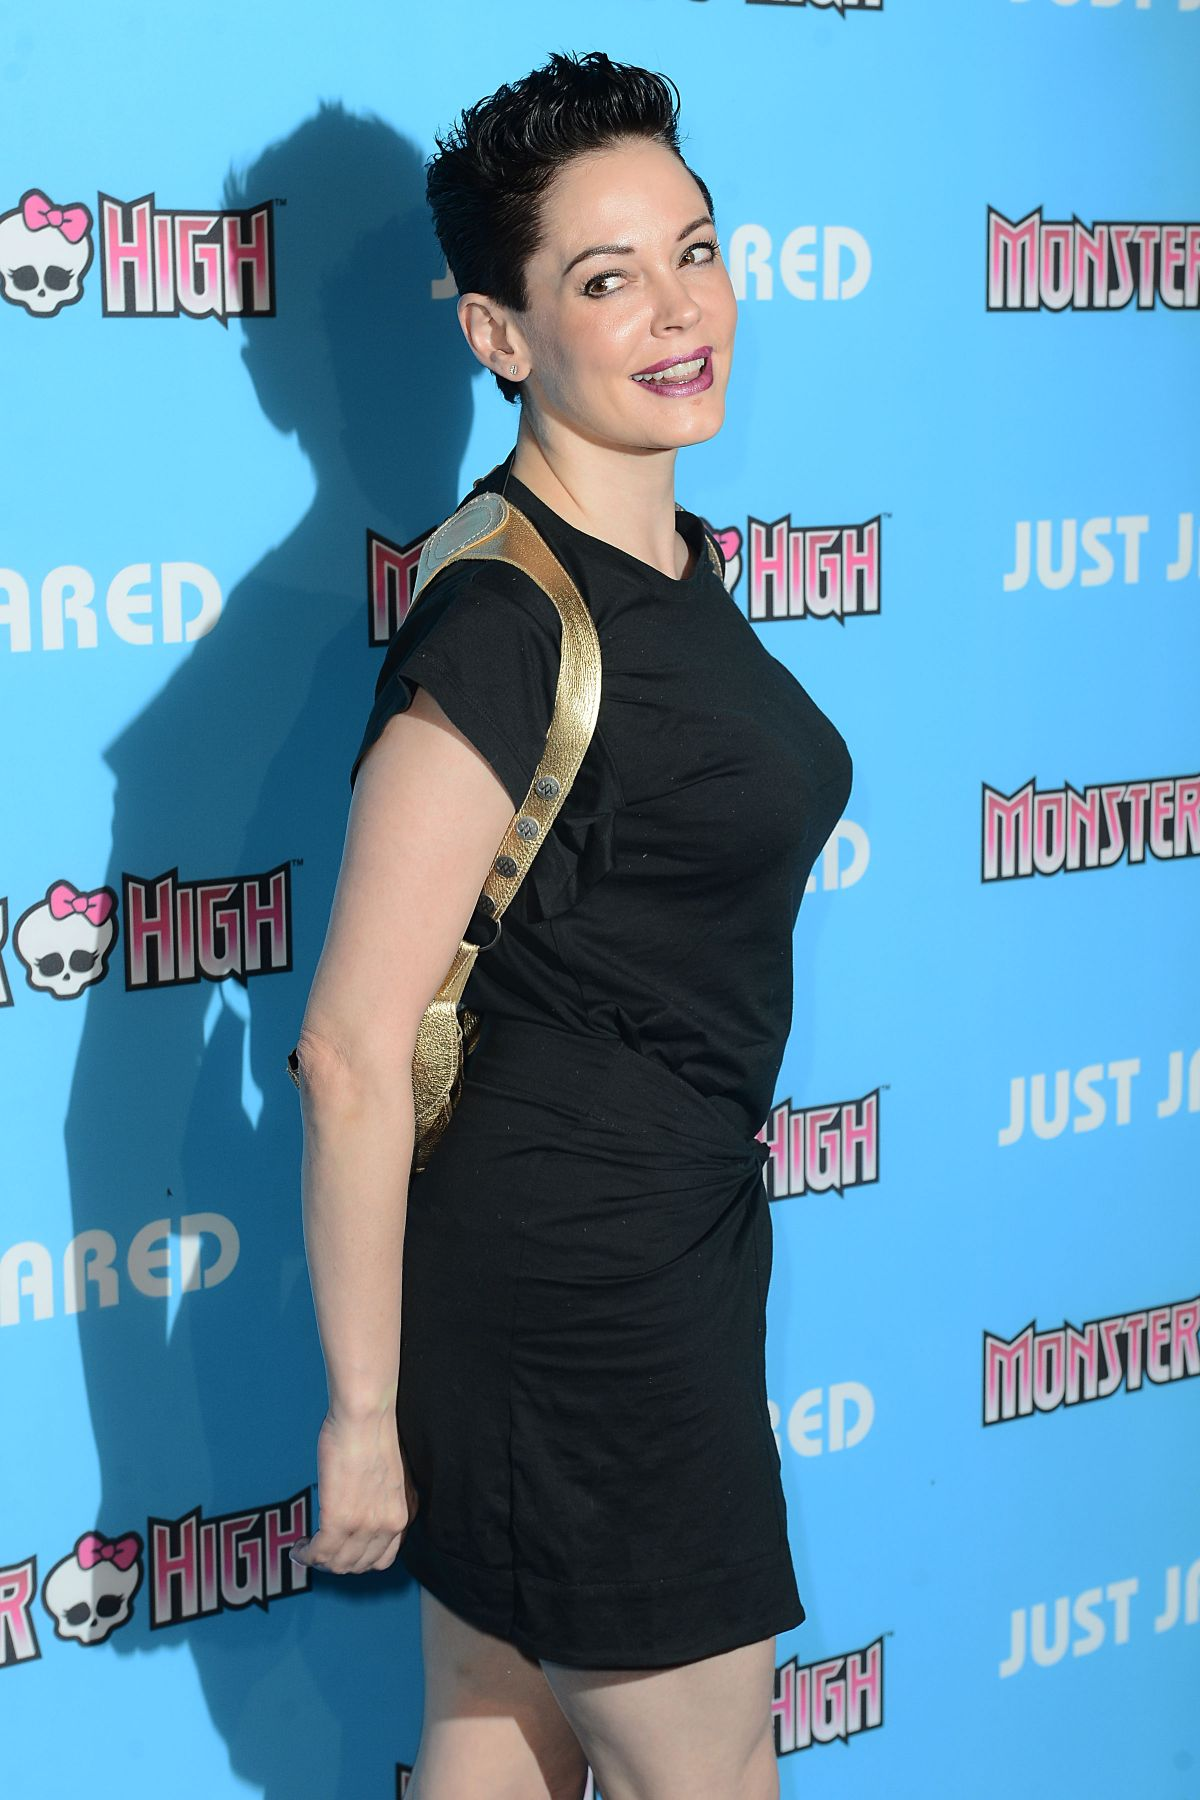 ROSE MCGOWAN at Just jared's Throwback Thursday Party in ...